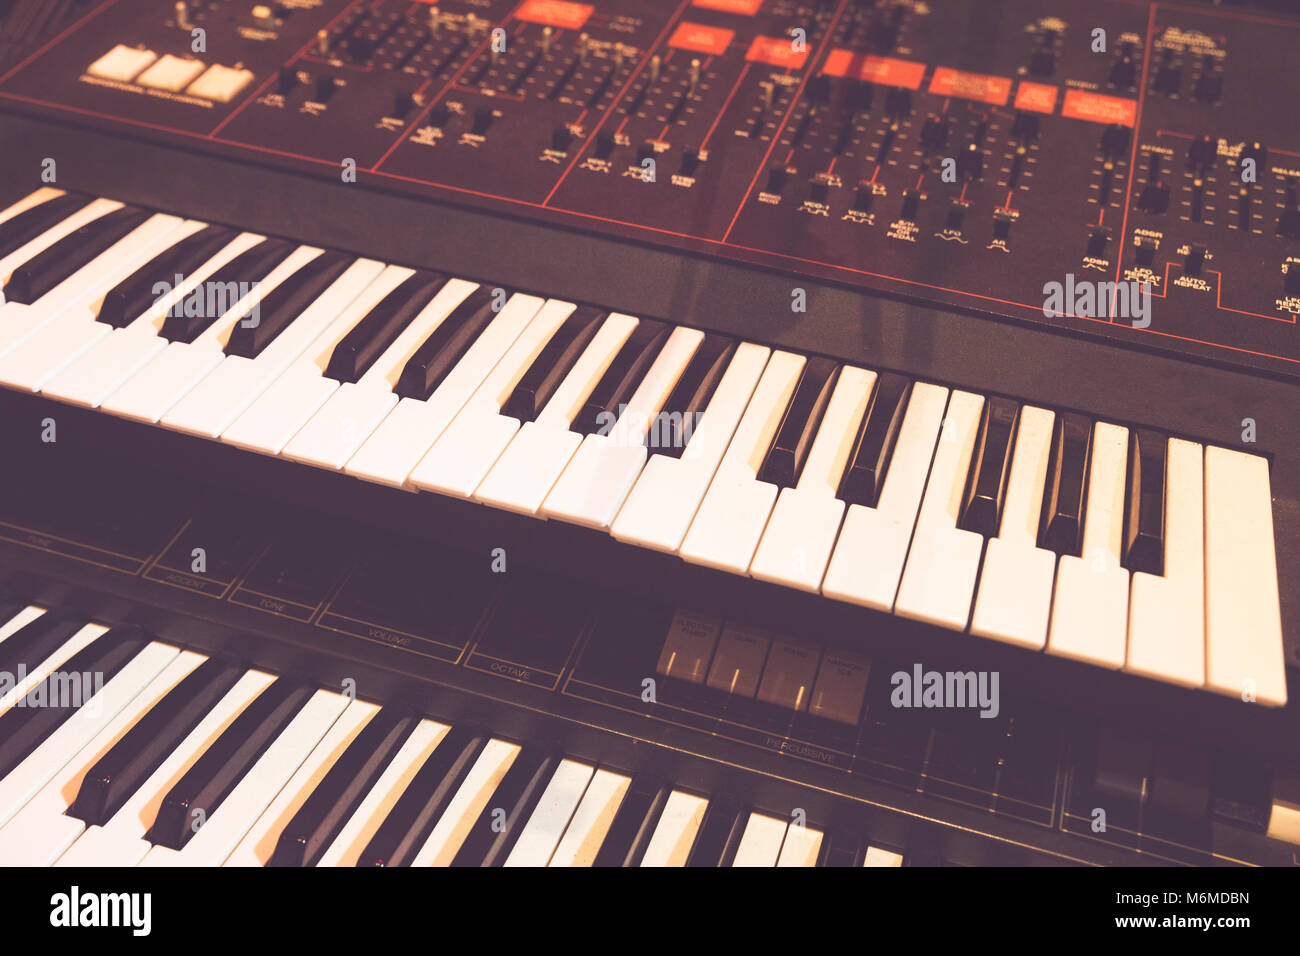 Keys of a digital piano used for a live concert - Stock Image